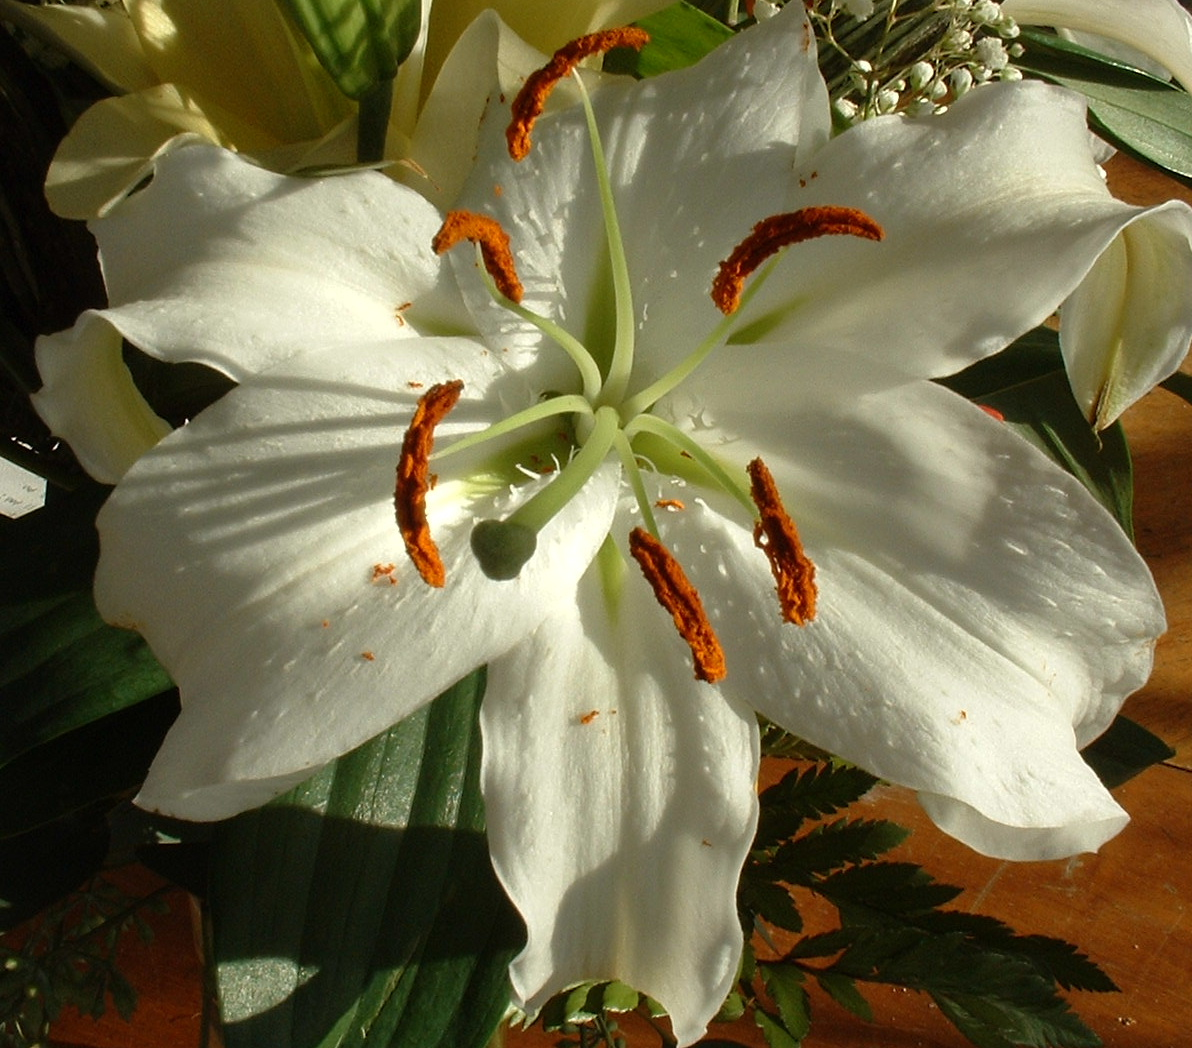 https://i0.wp.com/upload.wikimedia.org/wikipedia/commons/3/3a/Lily_white.jpg